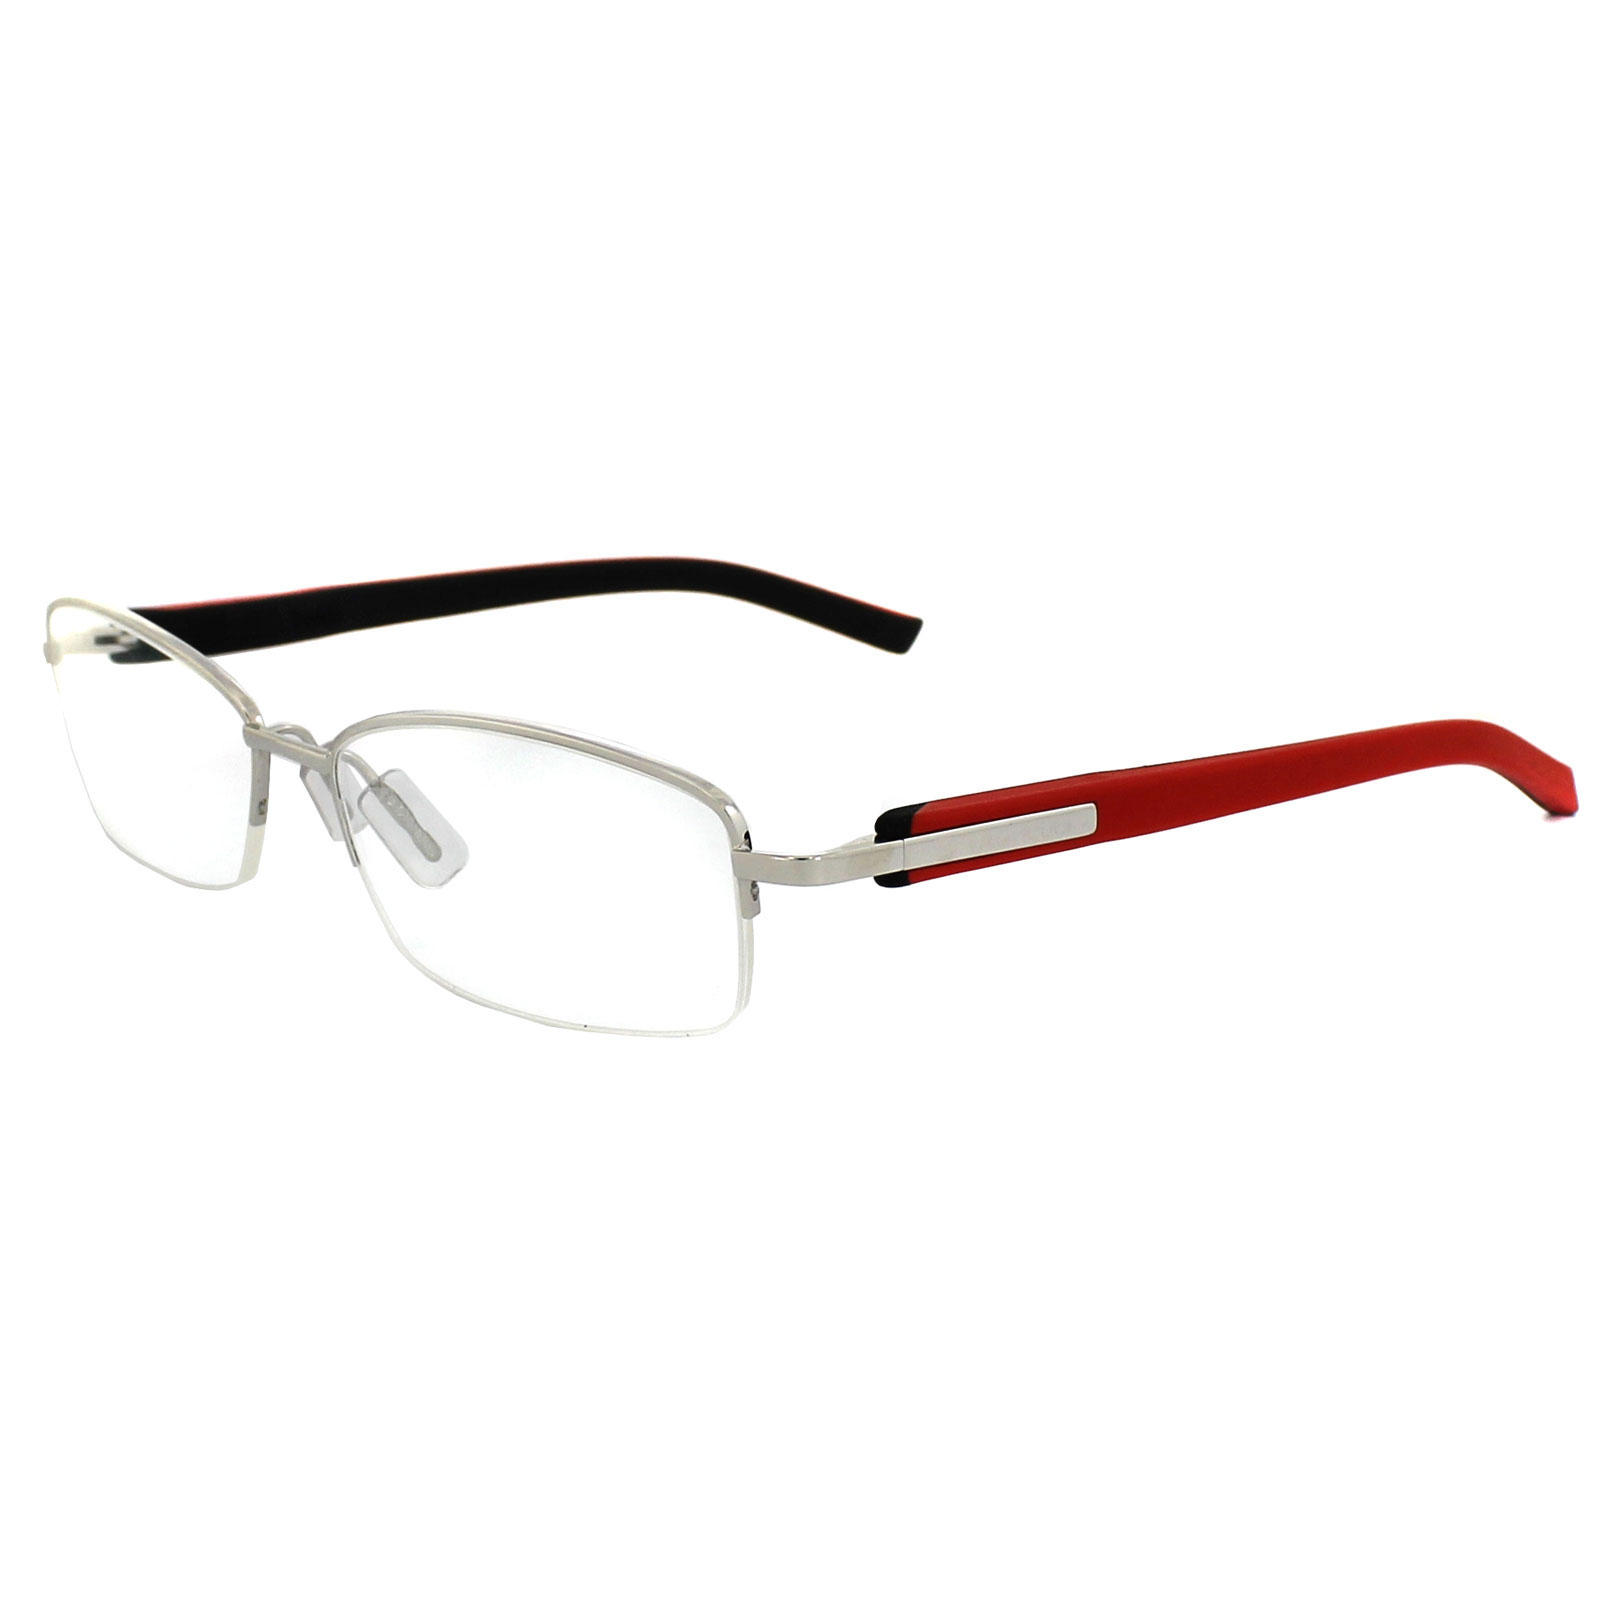 Tag Heuer Glasses Frames Trends 8210 005 Silver Black Red | eBay